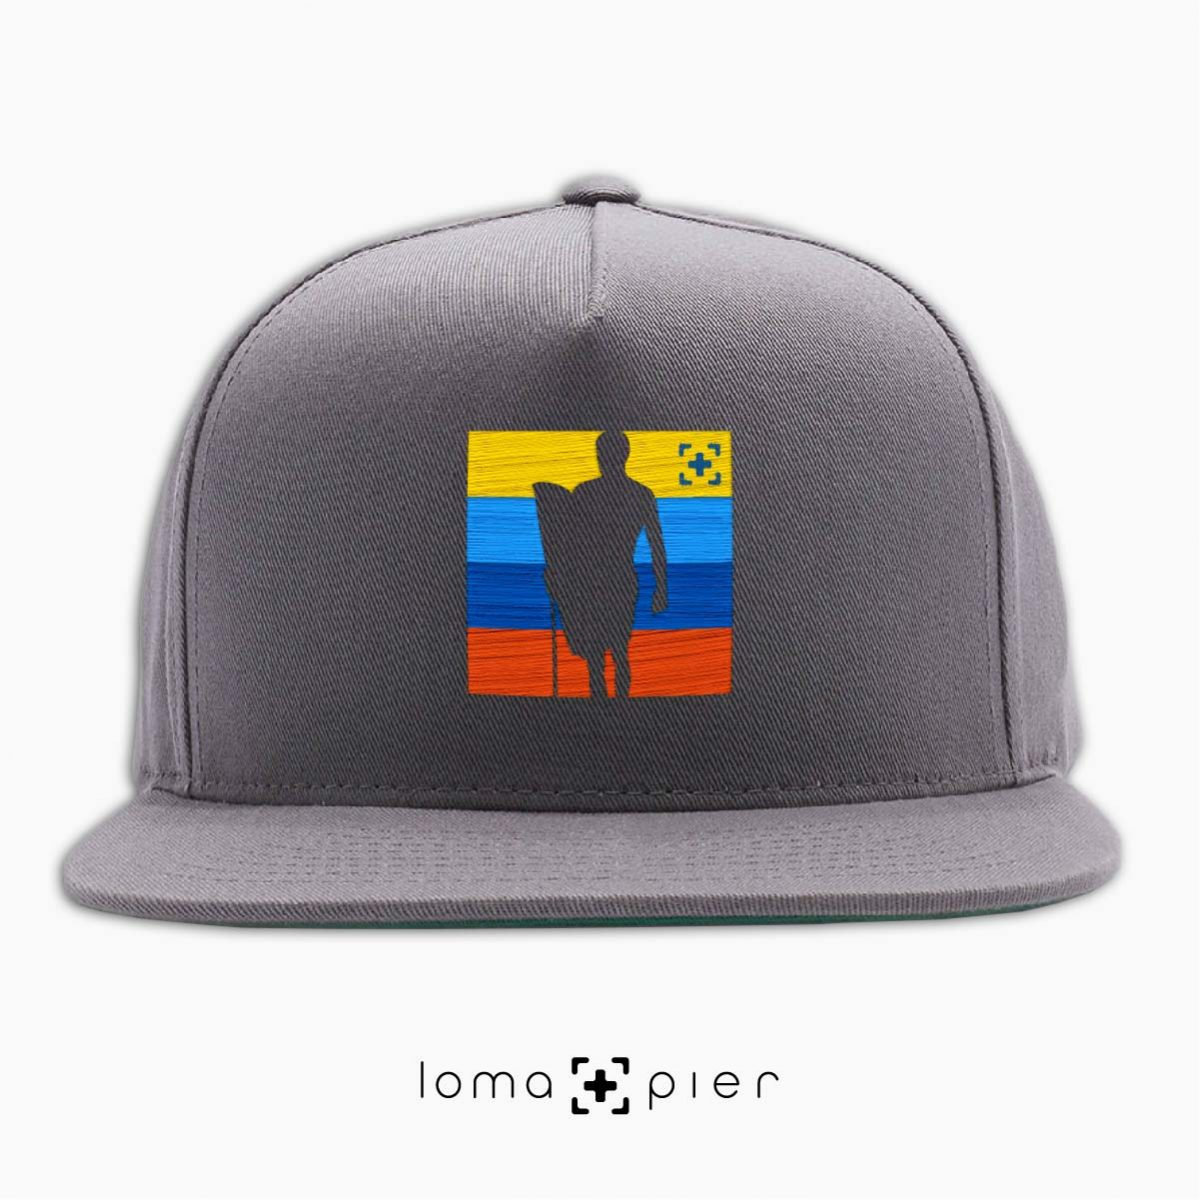 SON OF A BEACH surfer hat in grey by loma+pier hat store